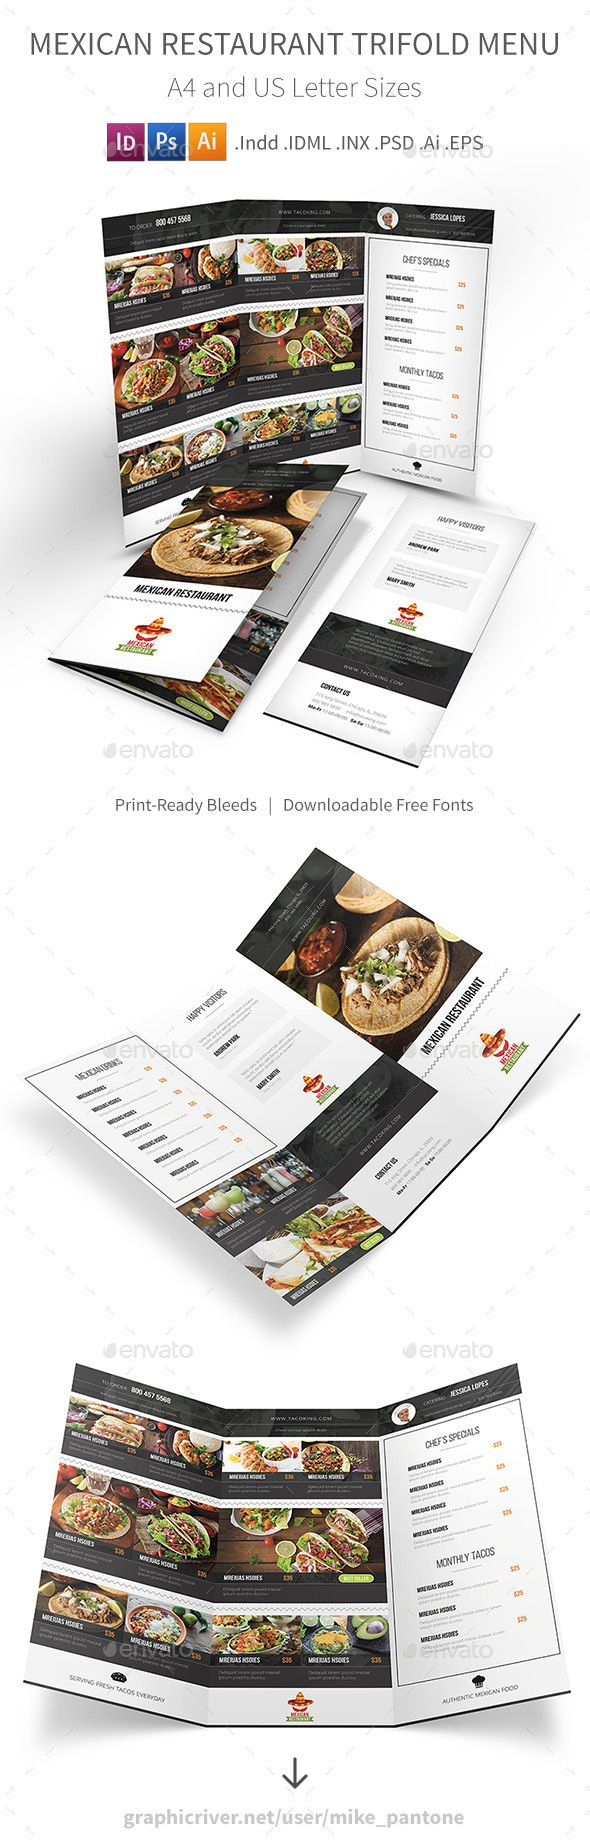 Best Trifold Restaurant Menu Template Images On Pinterest - Folded menu template